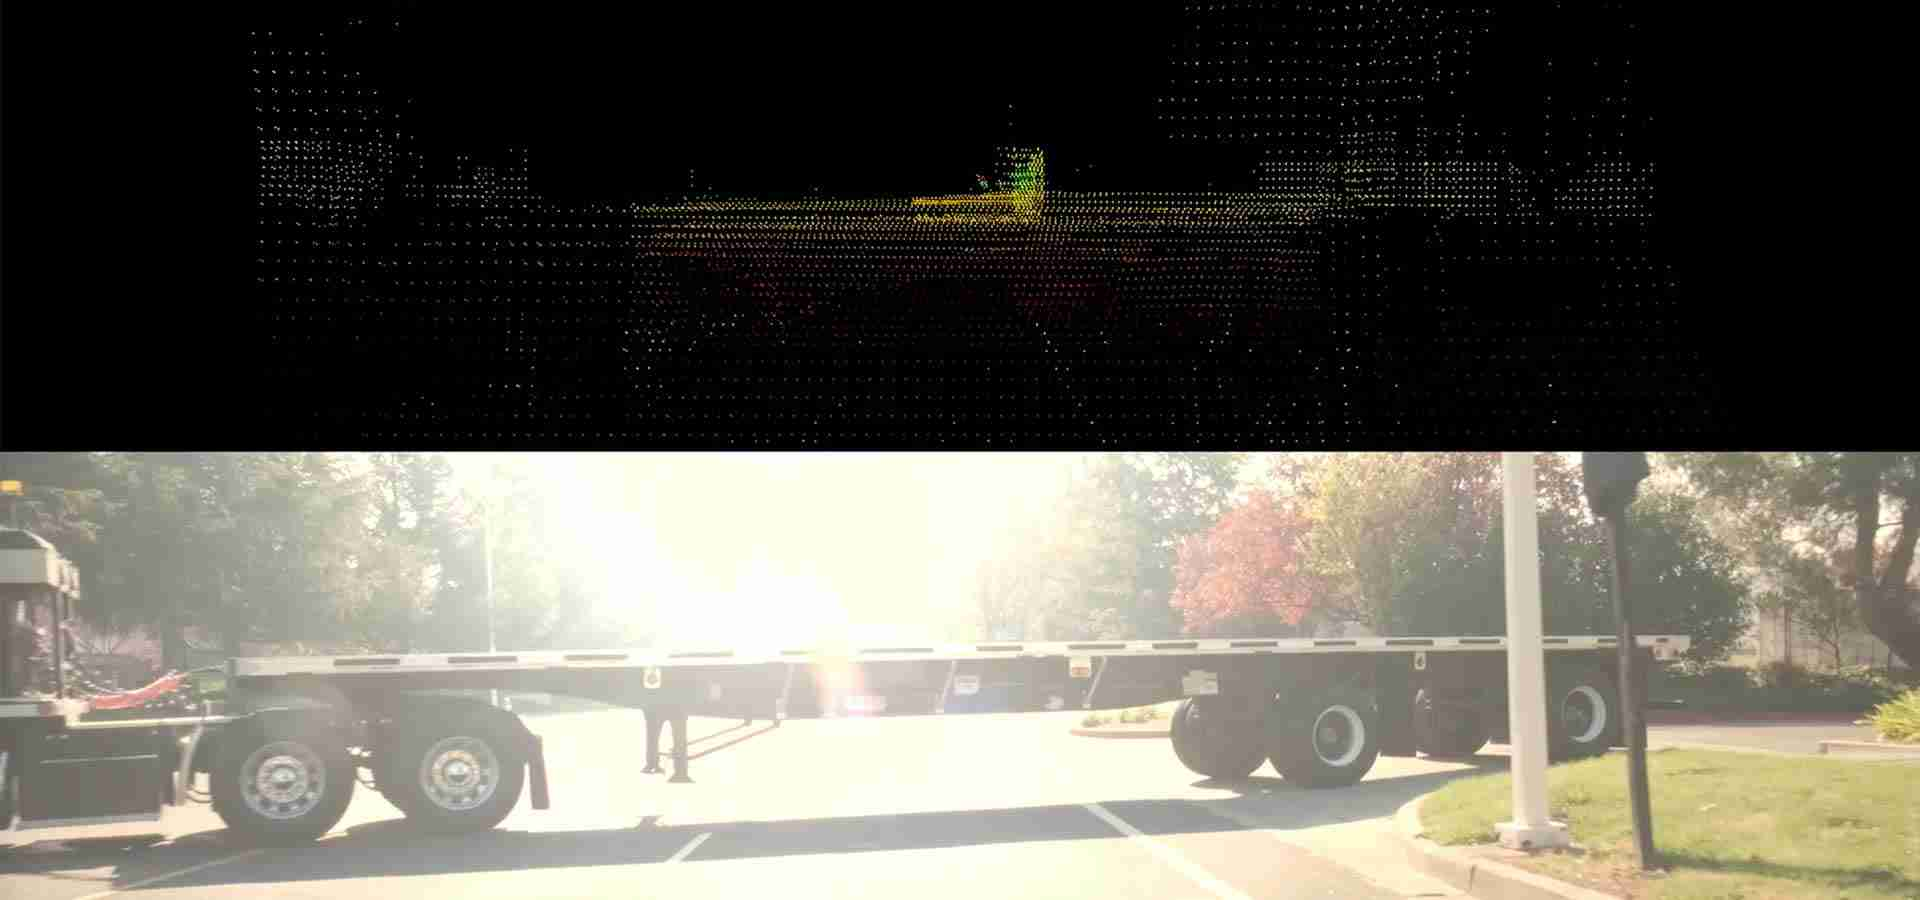 Flatbed Truck Crossing Intersection